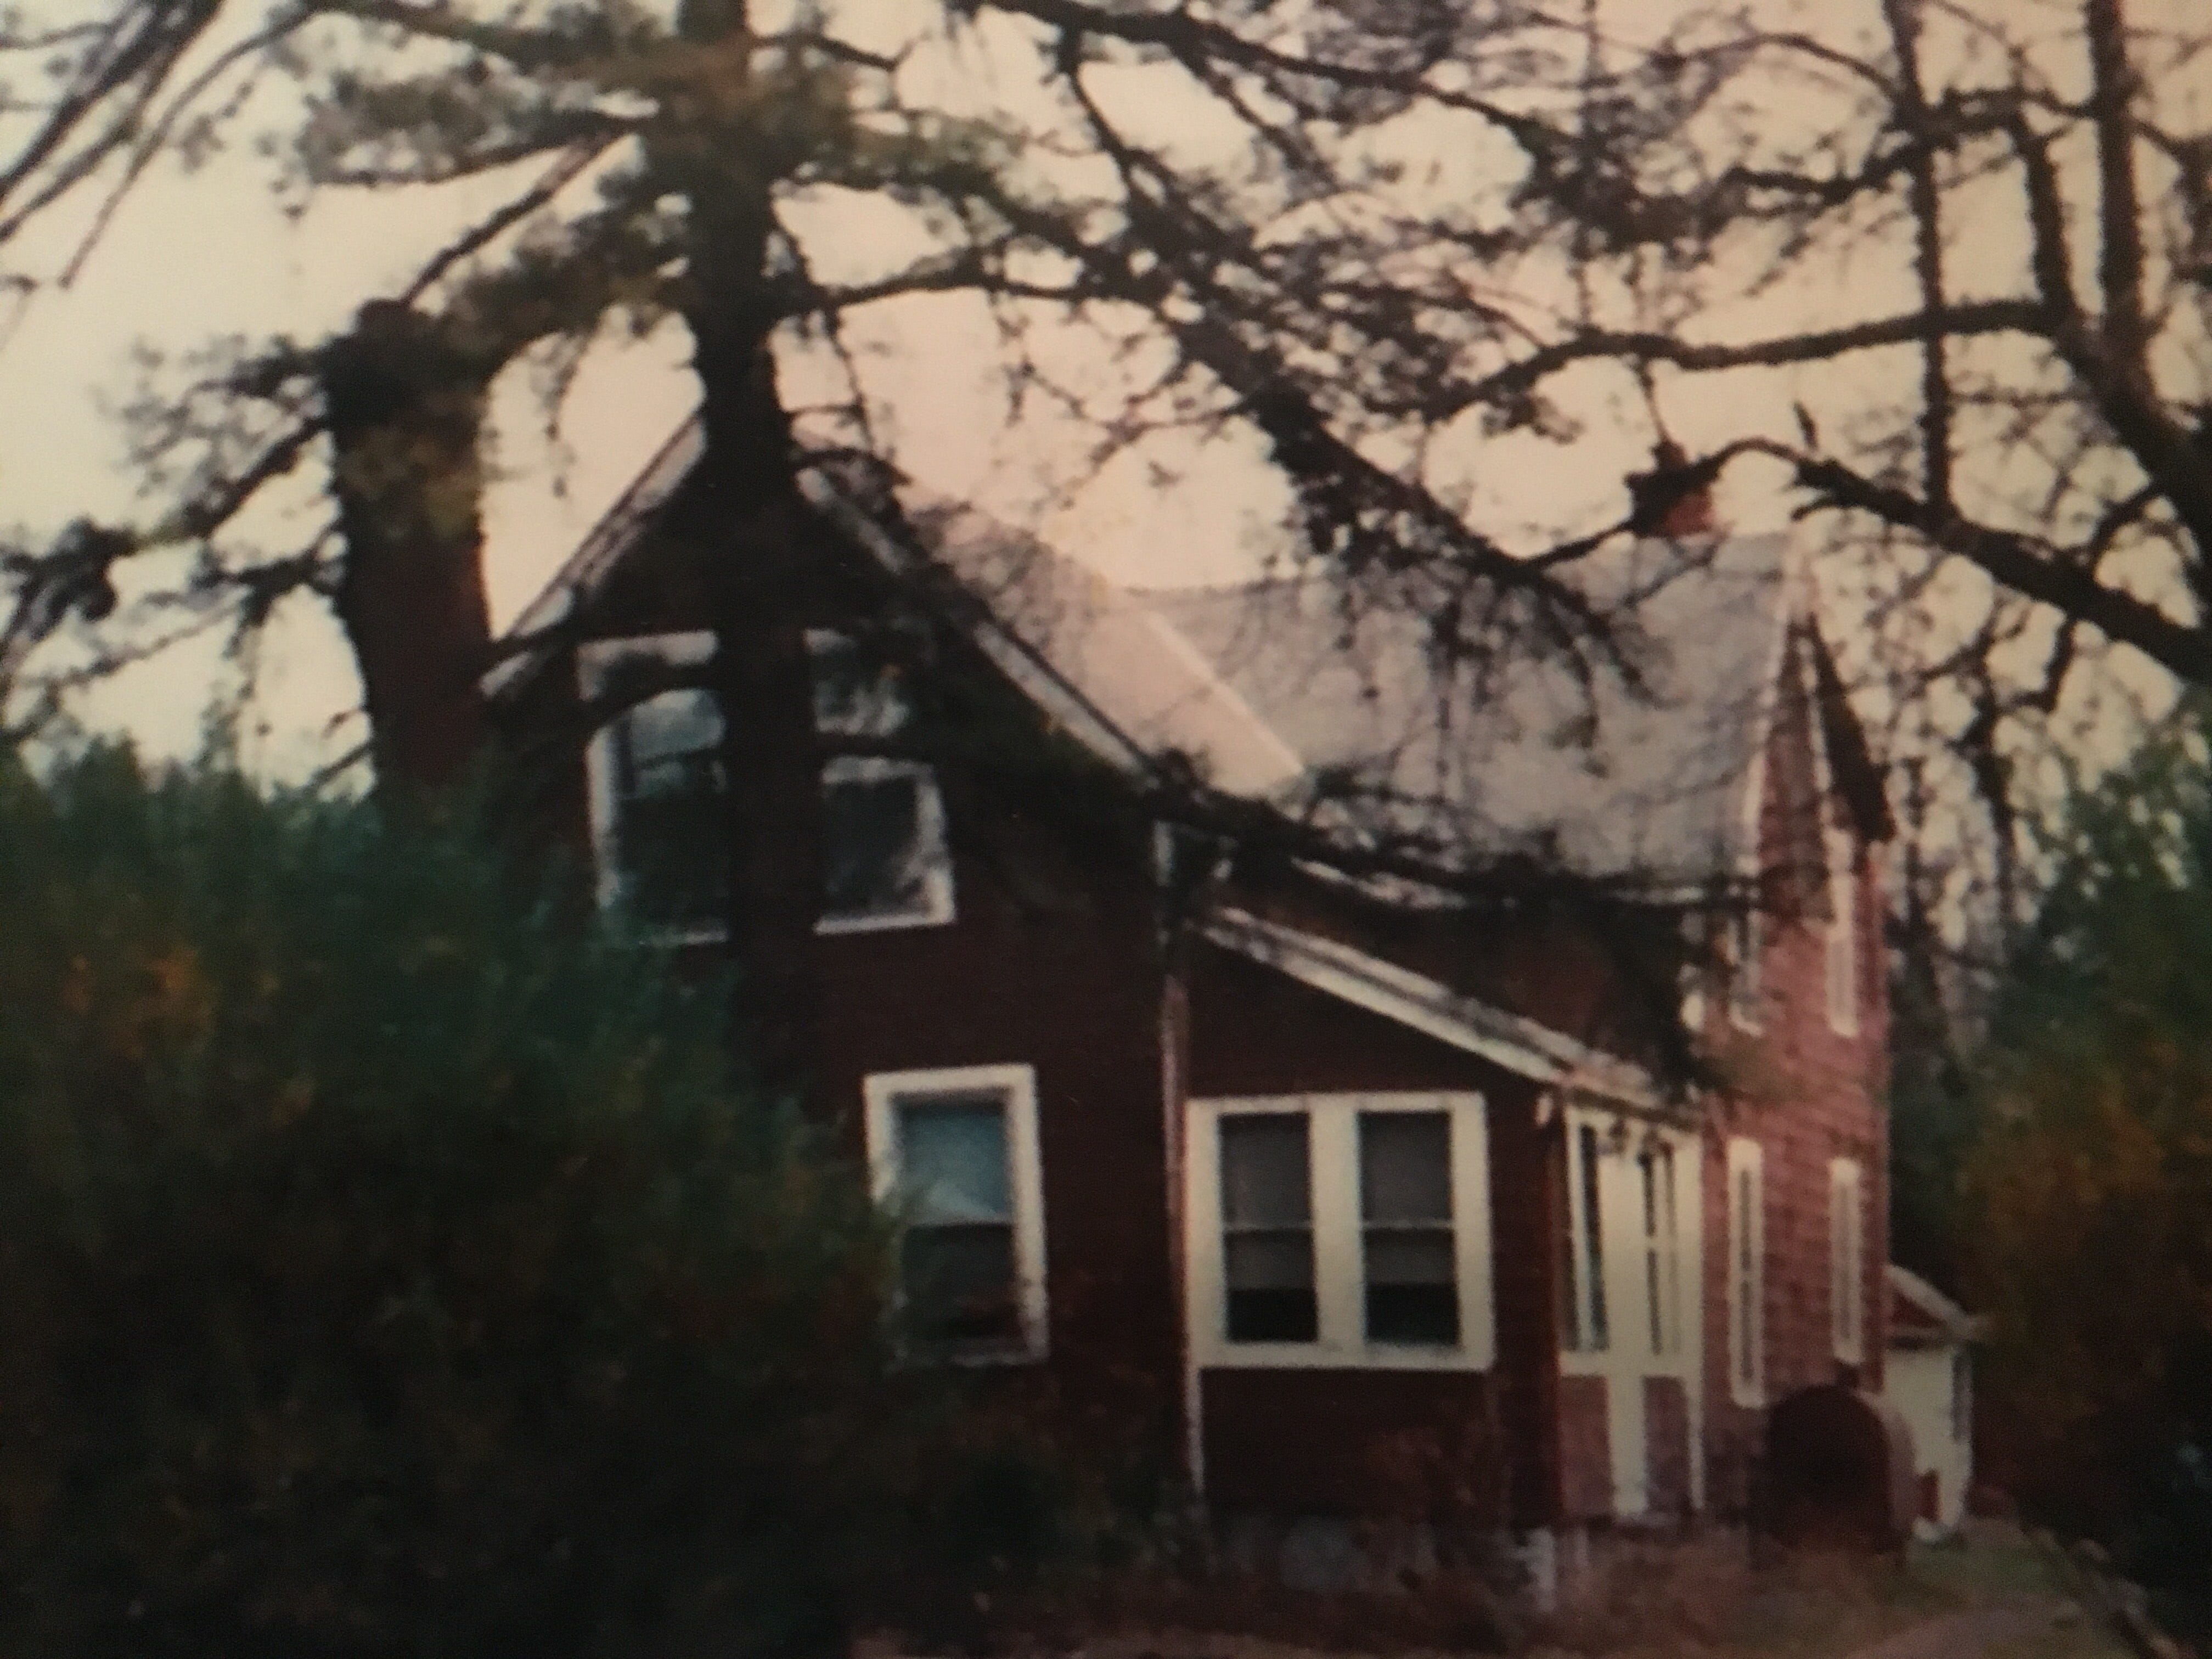 Steve Bolcar family photos: Childhood home in Whippany, built in 1912